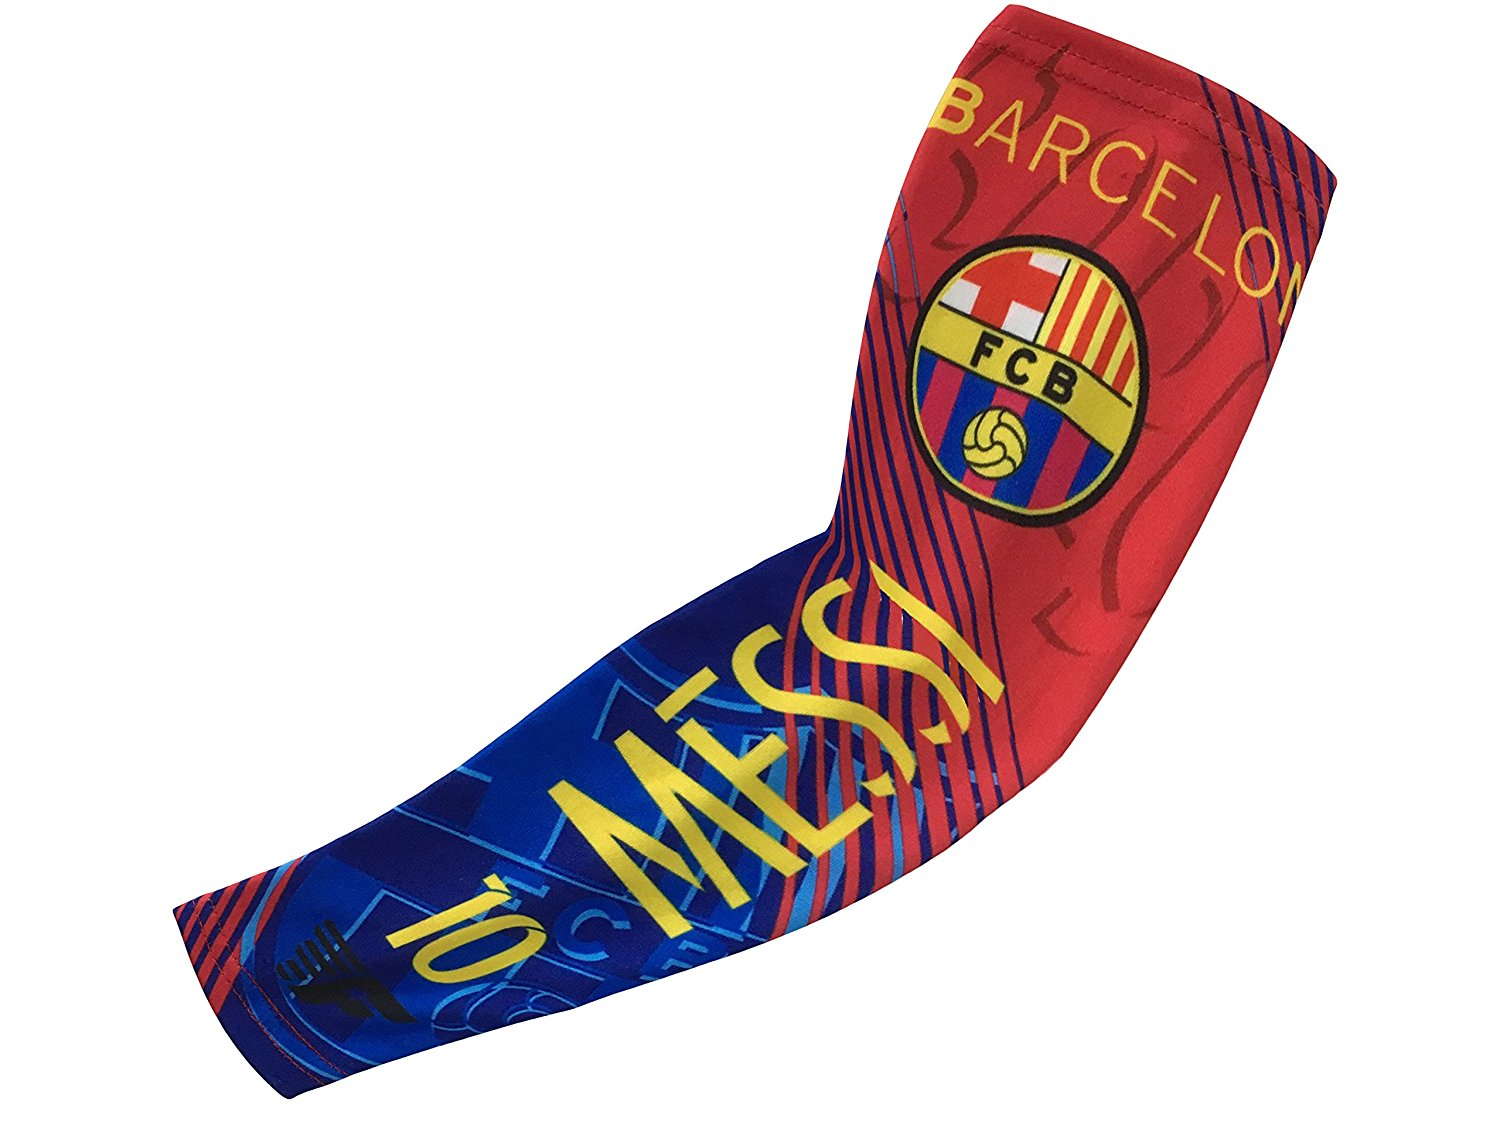 b05a303c5 Get Quotations · Forever Fanatics Barcelona Messi  10 Soccer Fan  Compression Arm Sleeves ✓Breathable Apparel ✓ Muscle